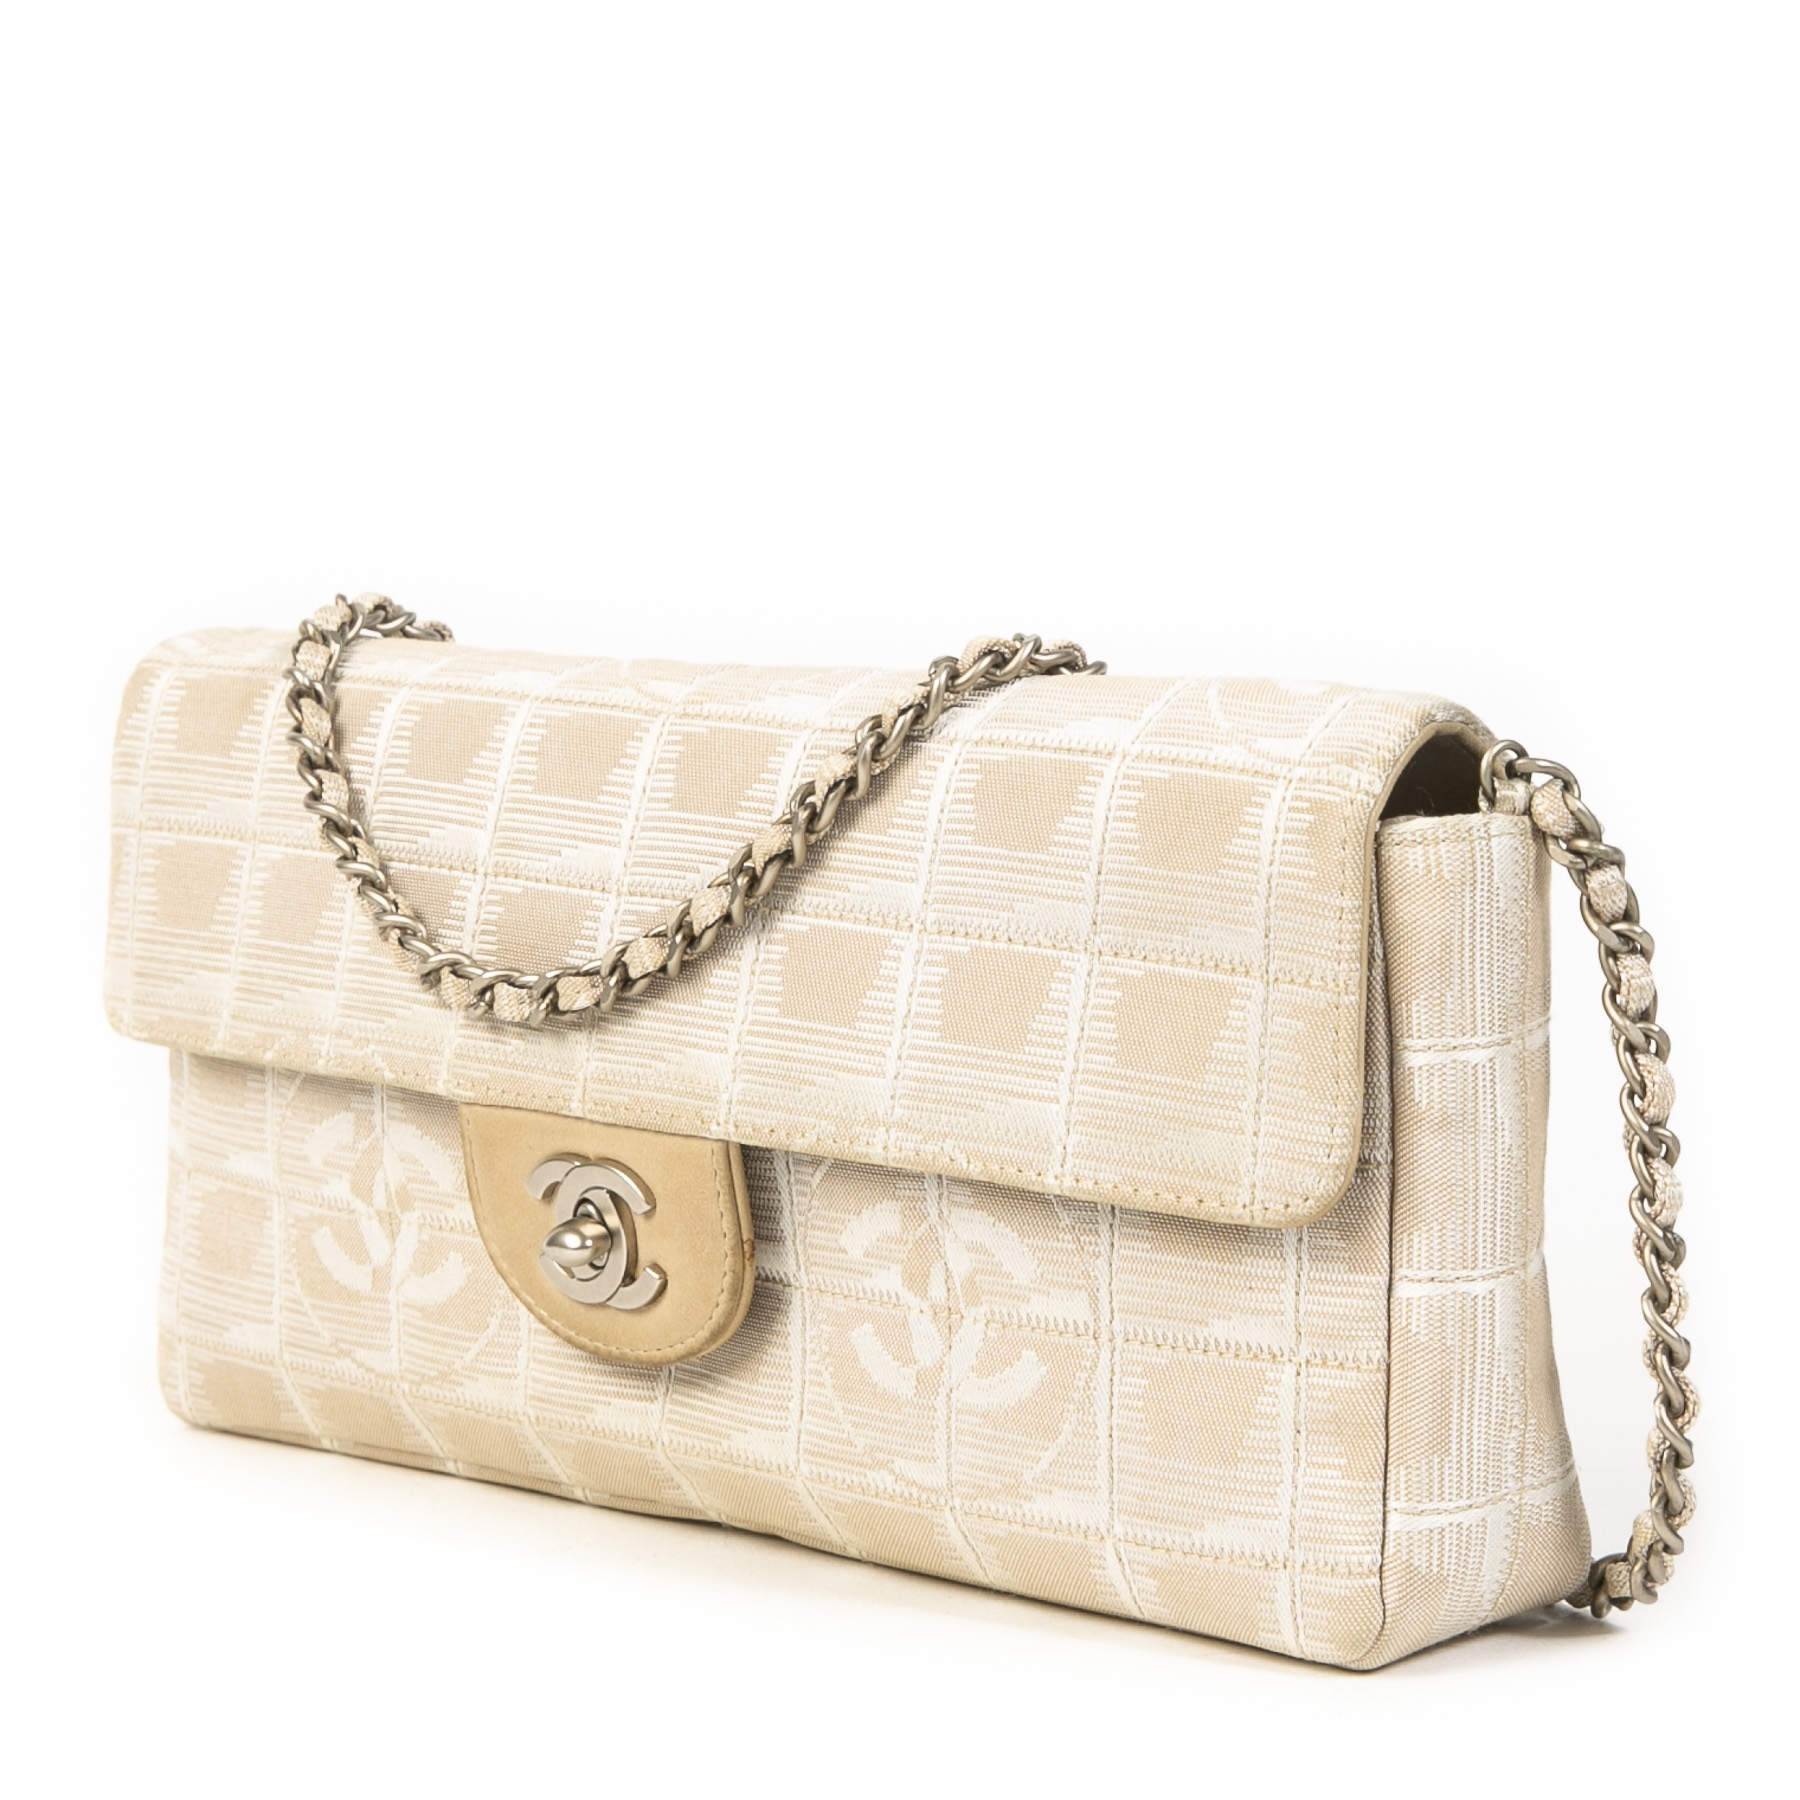 Authentieke tweedehands vintage Chanel East West Chocolate Bar Bag koop online webshop LabelLOV